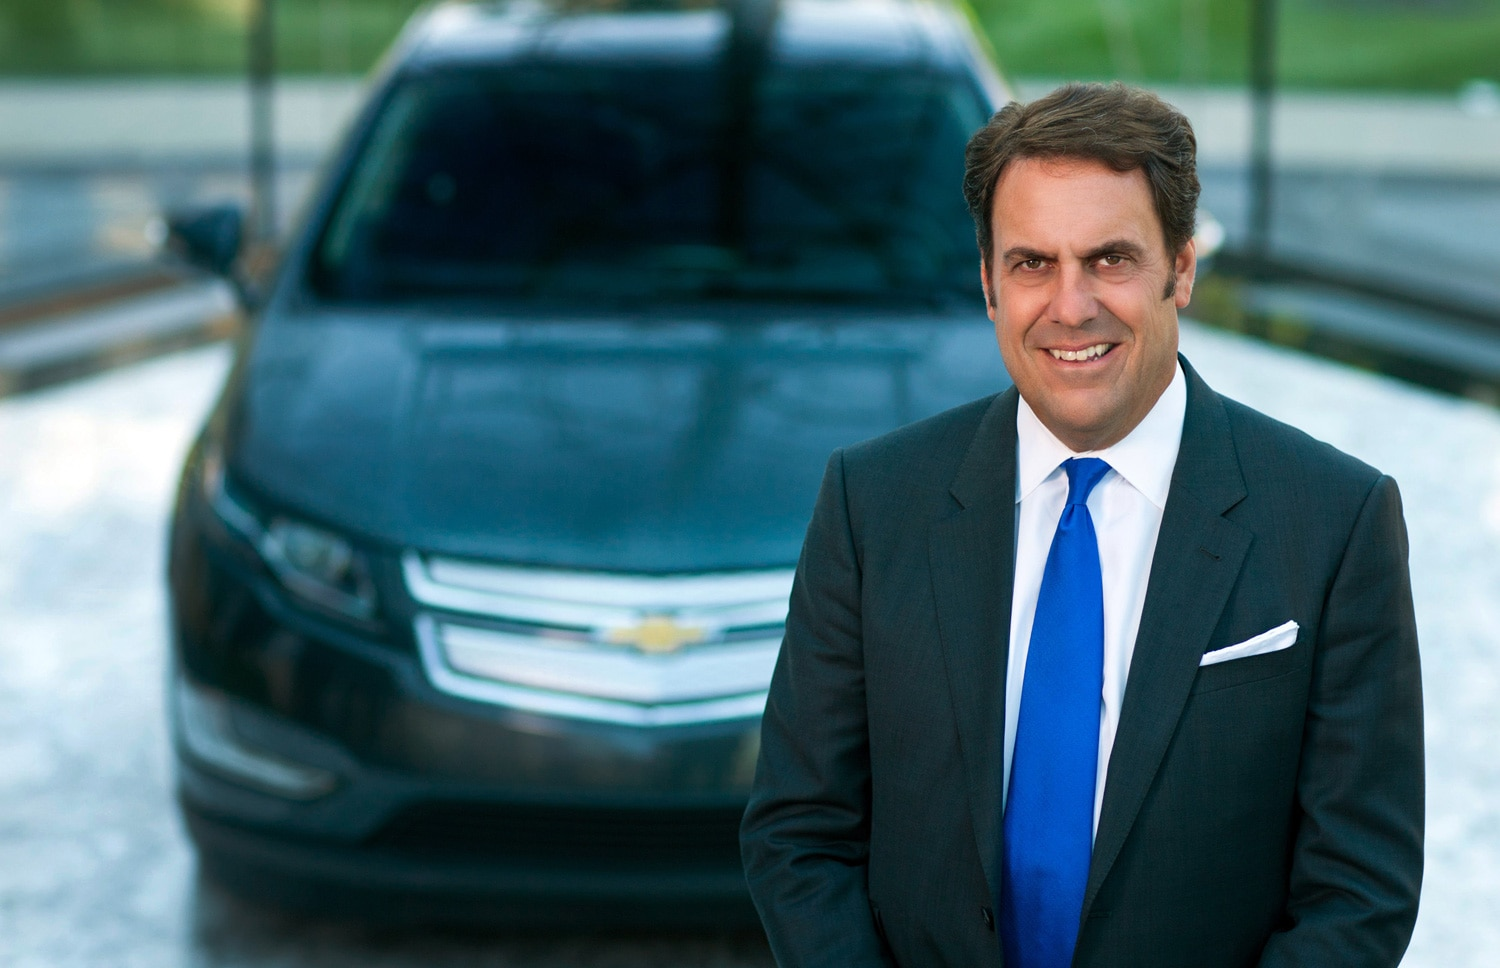 Mark Reuss With Chevrolet Volt In Background